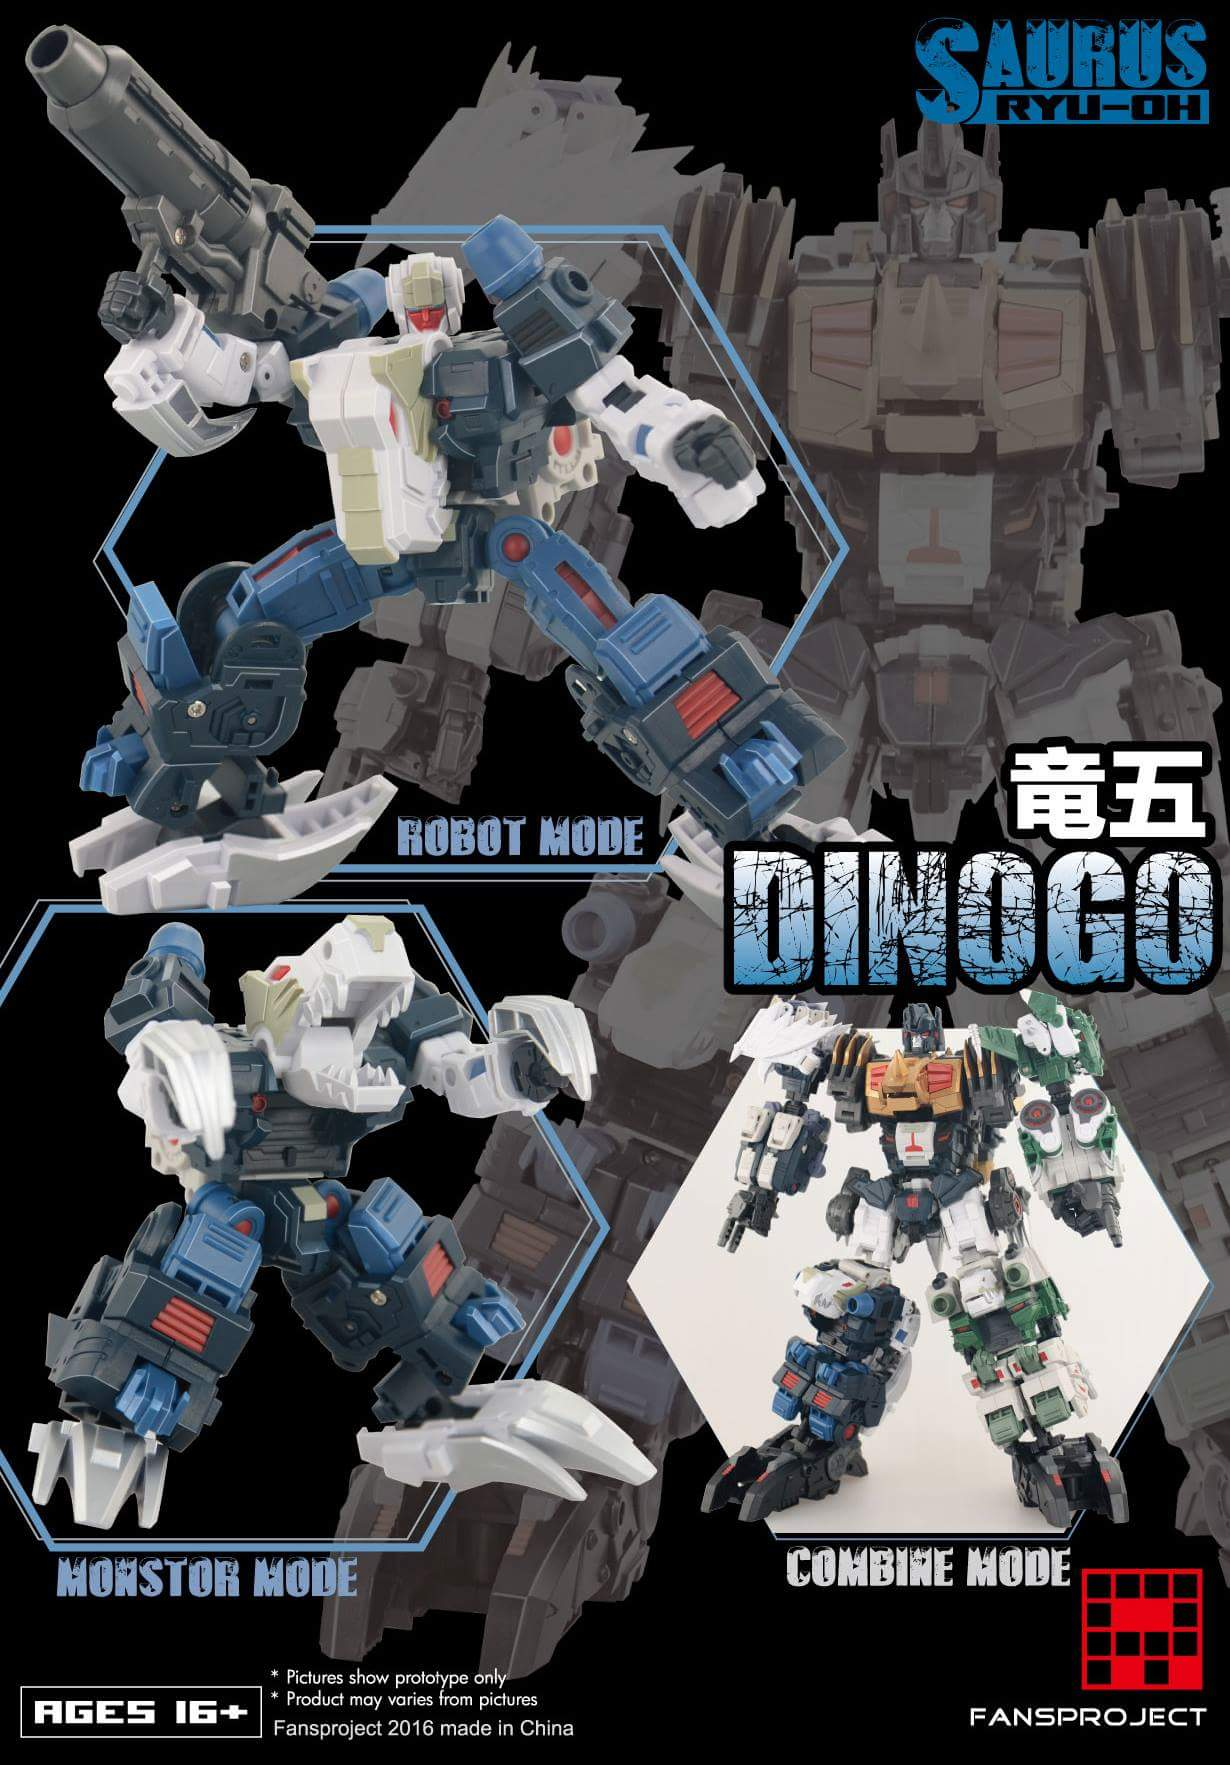 [FansProject] Produit Tiers - Jouet Saurus Ryu-oh aka Dinoking (Victory) | Monstructor (USA) - Page 2 VFXHT44R